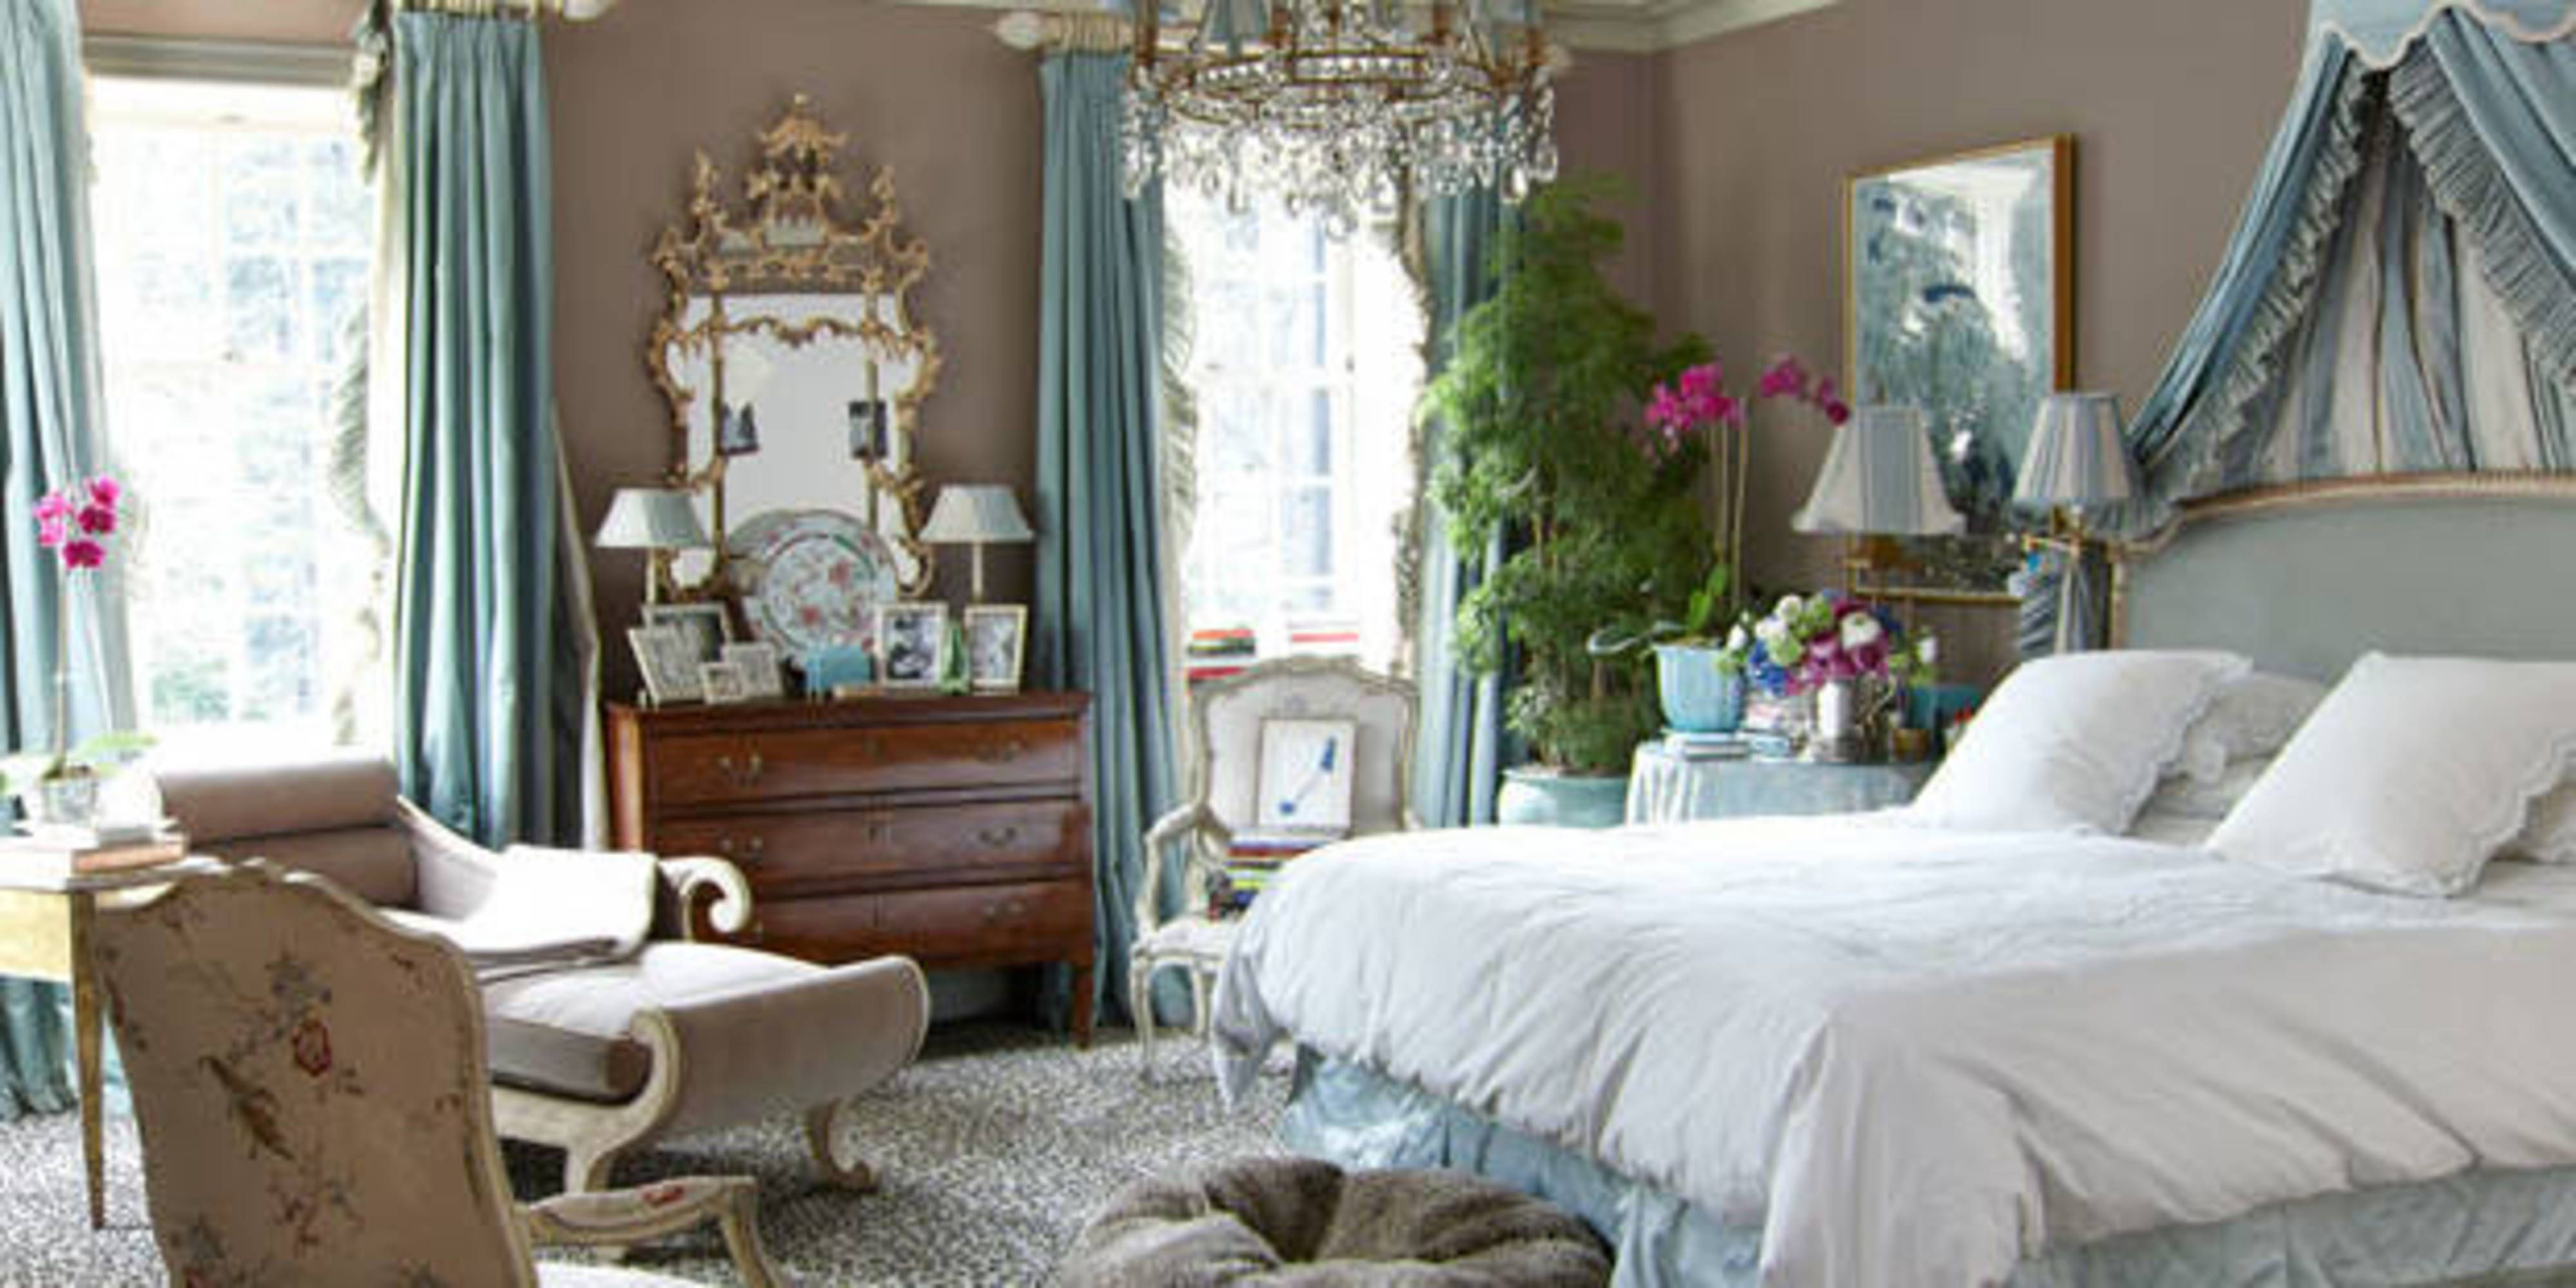 How To Make A Room Romantic Romantic Decorating